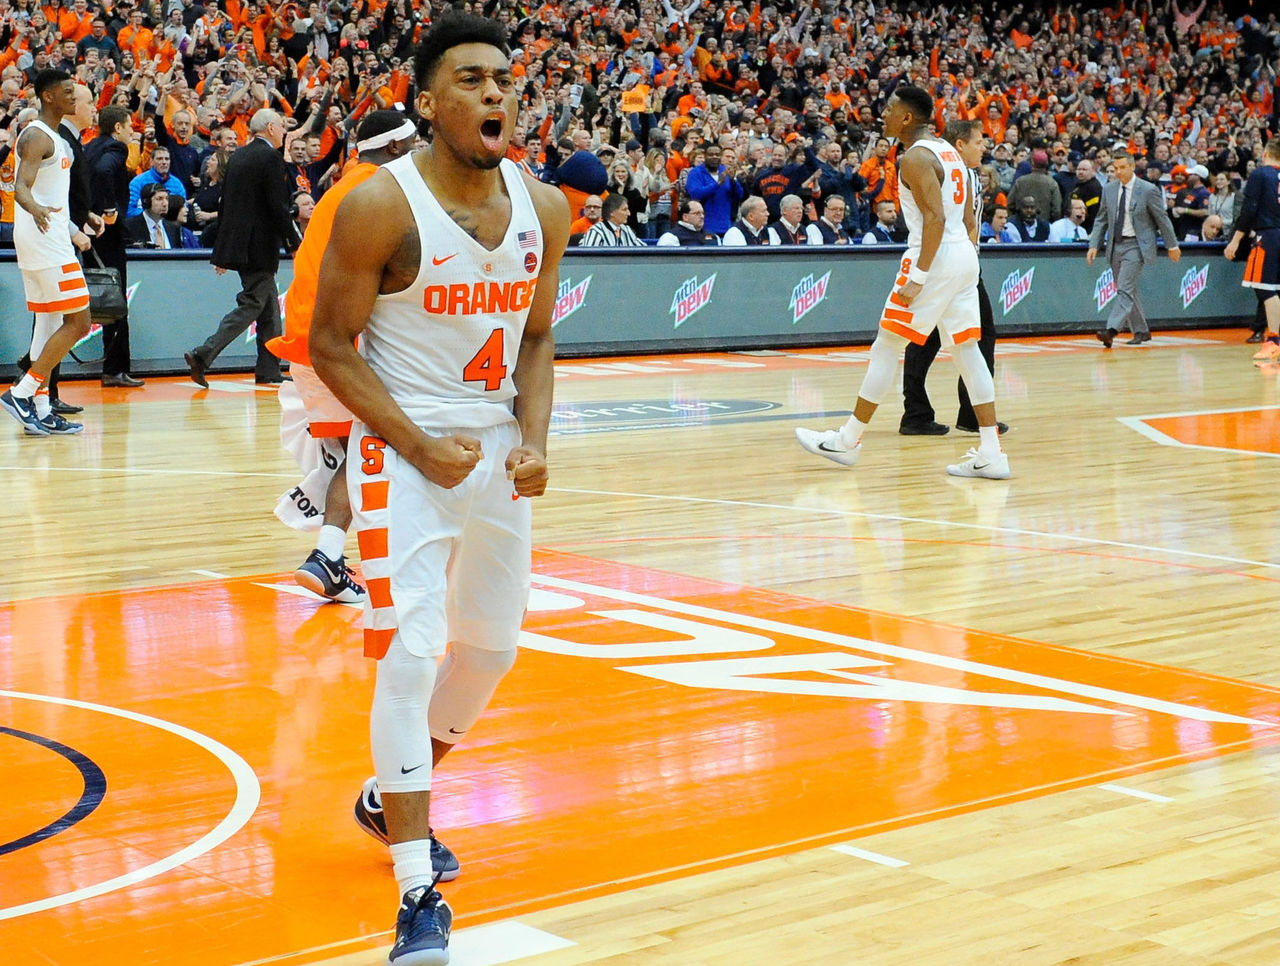 Cropped 2017 02 04t191019z 594934745 nocid rtrmadp 3 ncaa basketball virginia at syracuse